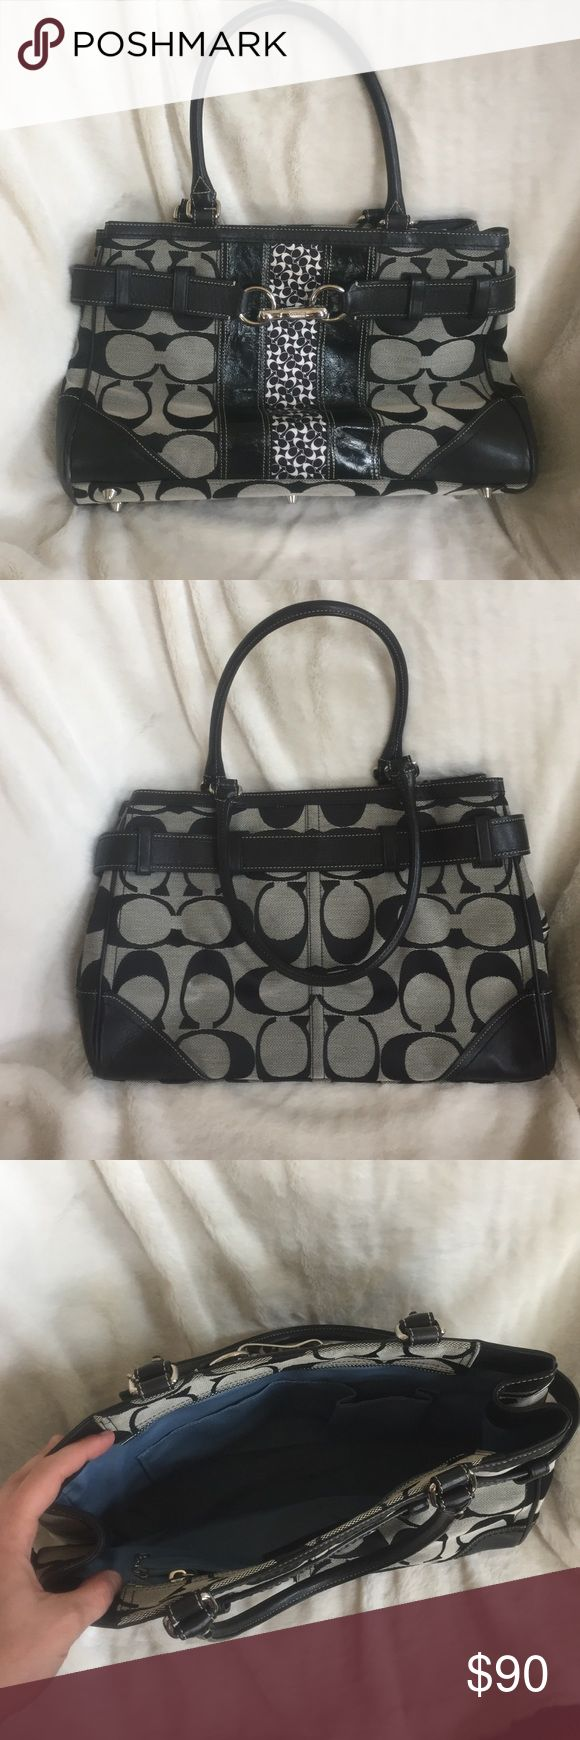 Coach purse great condition black and gray Lightly used very nice coach purse has a little staining on the inside lining but overall very very clean! Coach Bags Shoulder Bags